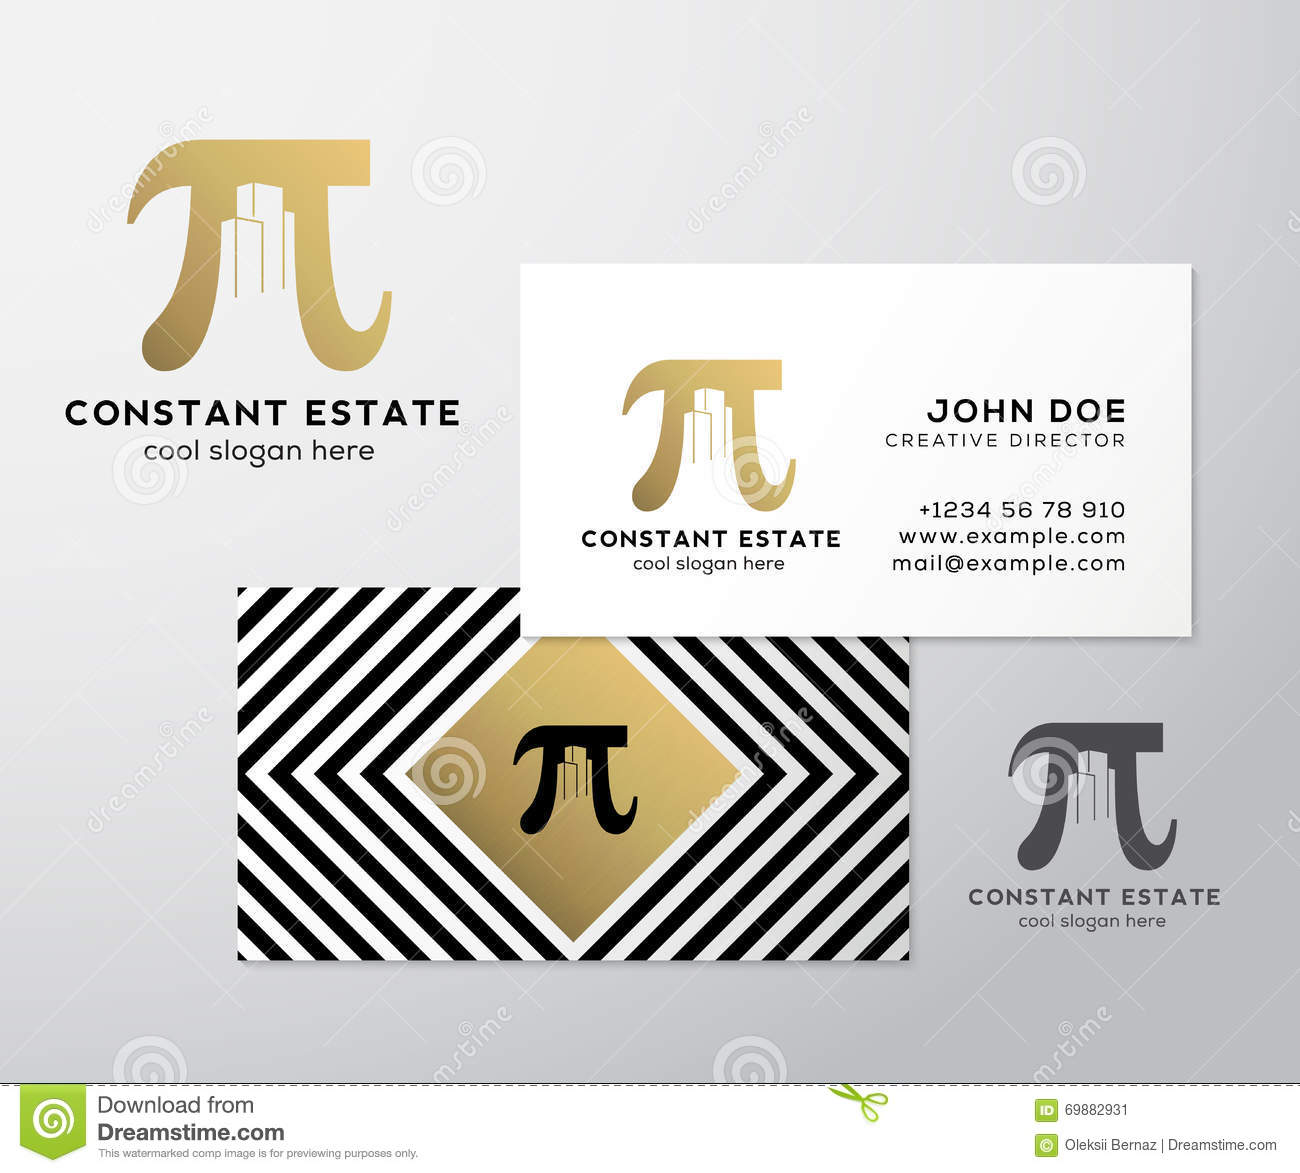 Calibre De Carte Visite Professionnelle Constant Estate Abstract Vector Premium Signe